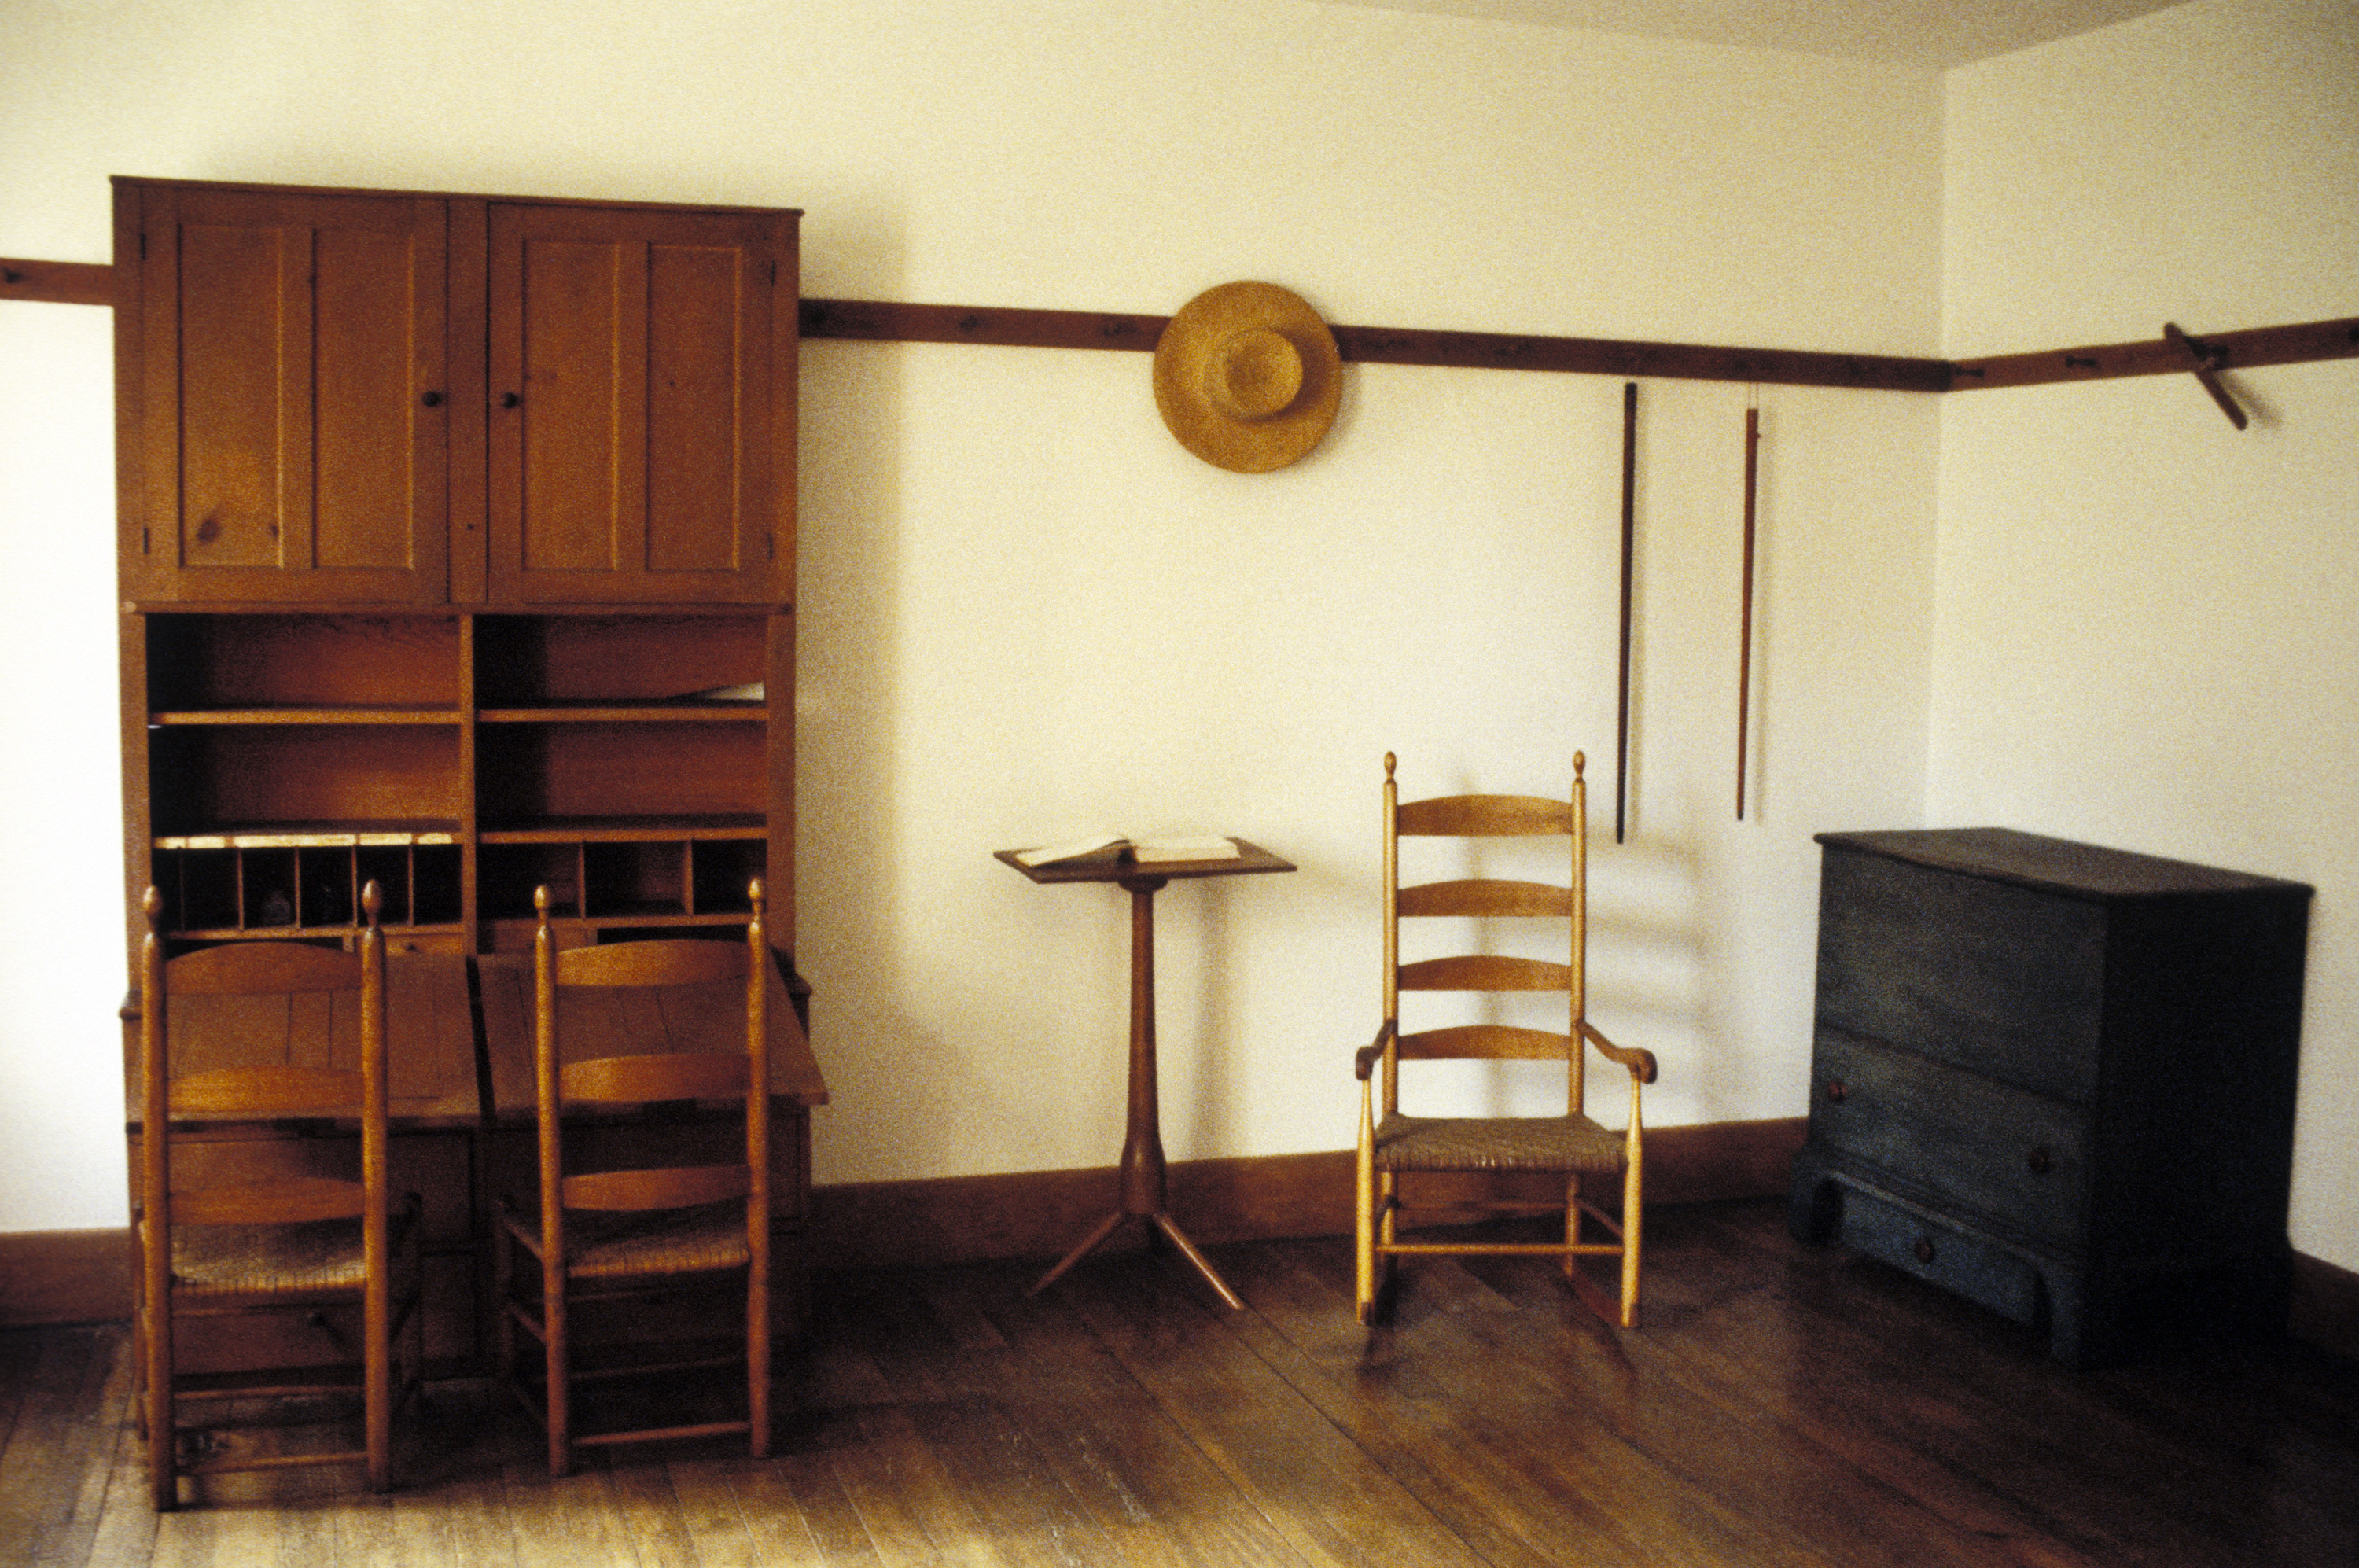 One of America's most popular furniture styles was invented by a celibate religious sect